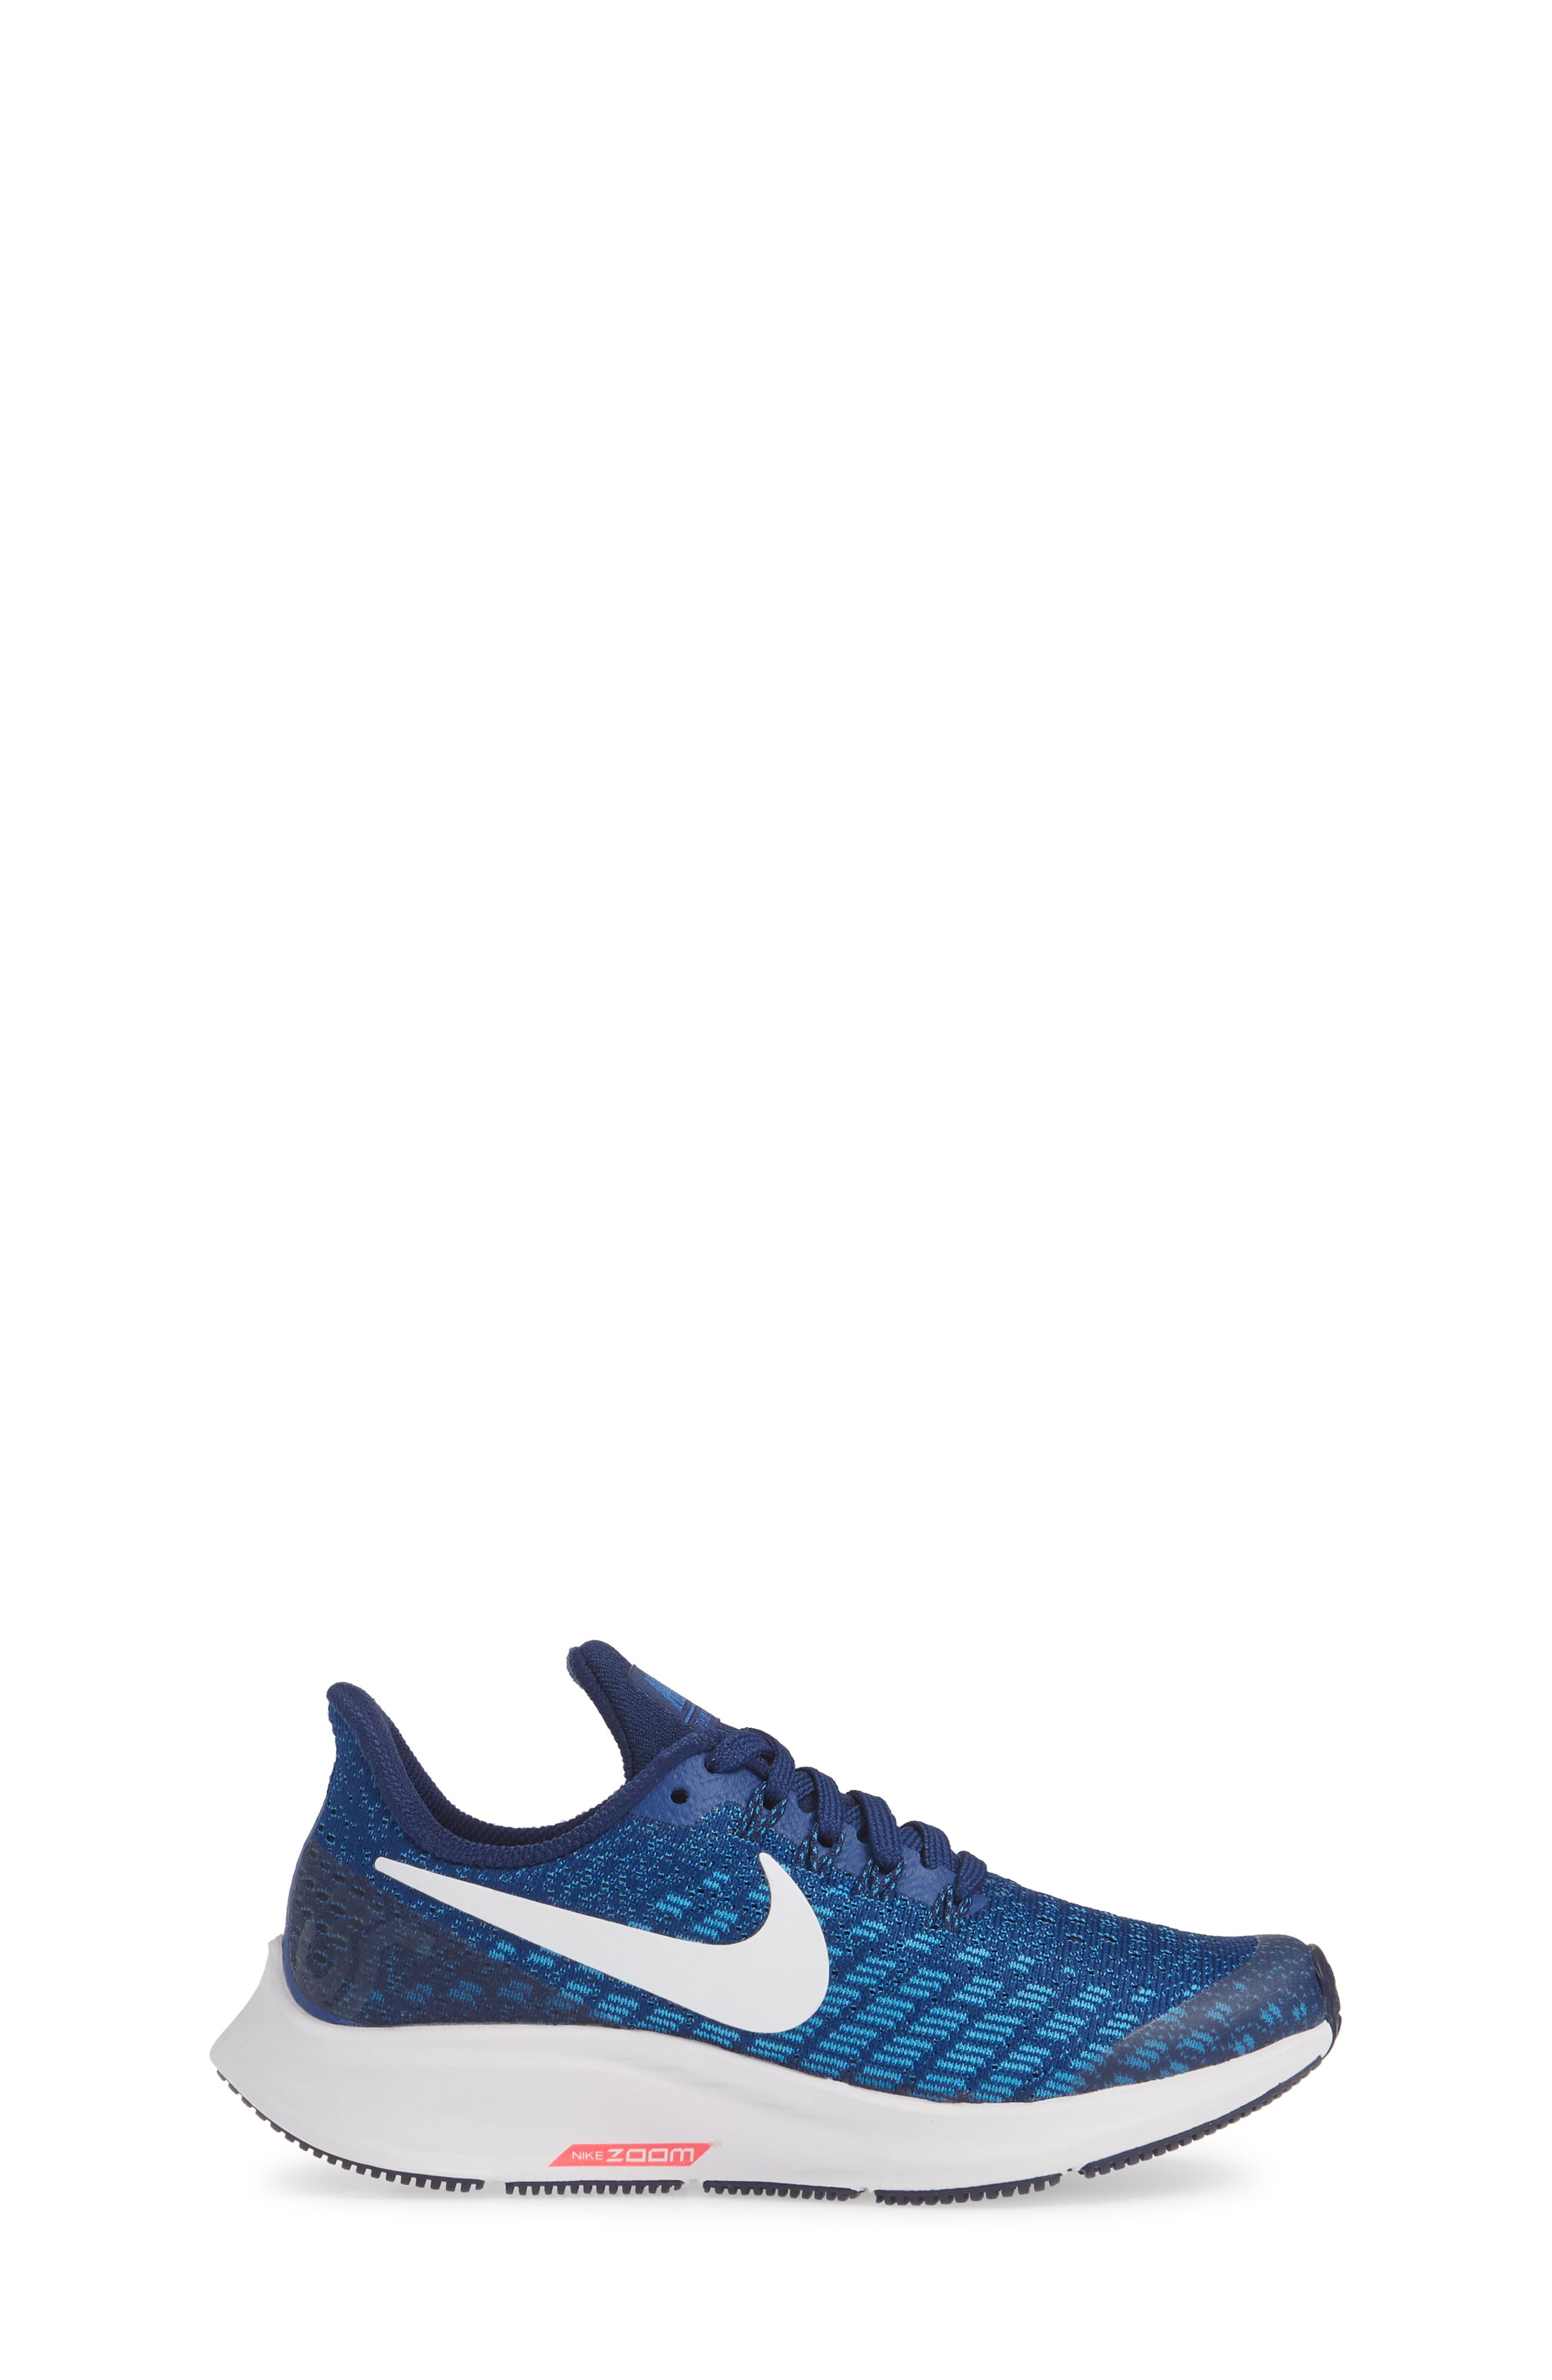 NIKE, Air Zoom Pegasus 35 Sneaker, Alternate thumbnail 3, color, INDIGO FORCE/ WHITE-BLUE-BLUE